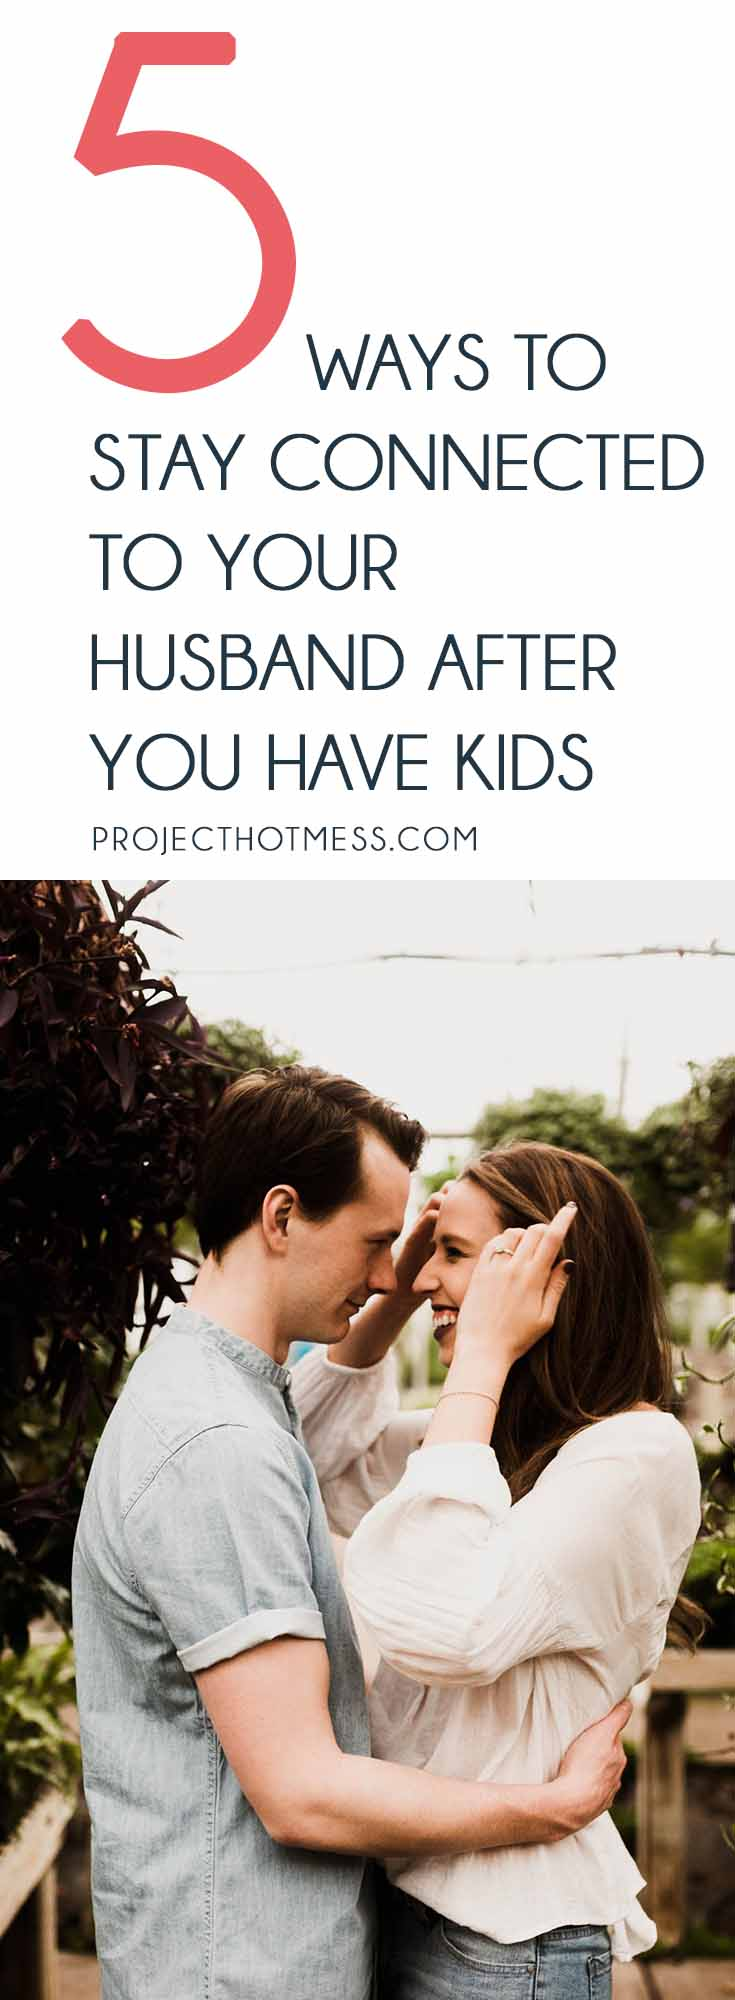 There's no two ways about it, kids change your relationship. But it's still important to stay connected to your husband after you have kids and this is how. Relationships | Marriage | Partner | Marriage Advice | Marriage Goals | In Love | Love | Marriage Problems | Spice Up Your Marriage | Marriage Ideas | Happy Marriage | Relationship Goals | Relationship Advice | Relationship Tips |